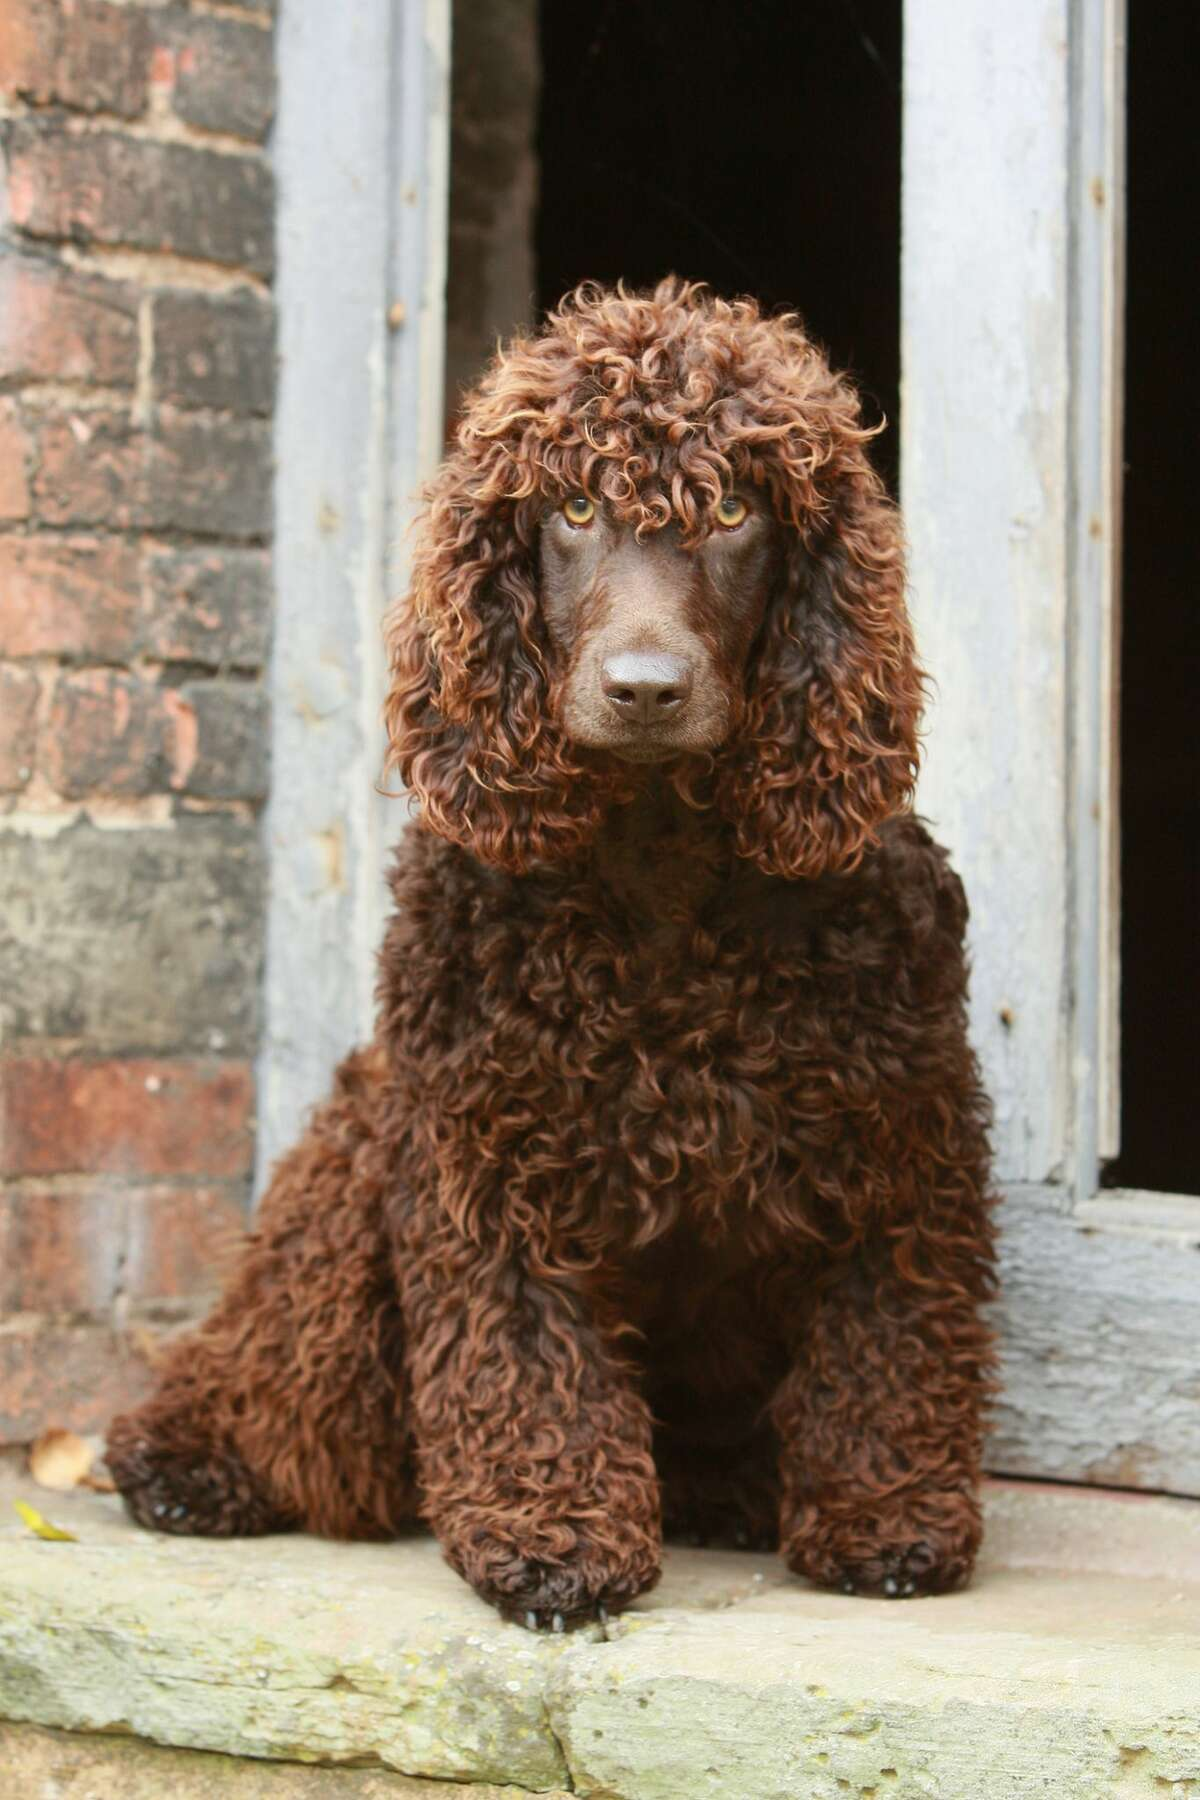 12) Irish Water Spaniel Work Score: 77.09 2015 Popularity: 144 Irish water spaniels are known to be a talented breed adept at agility, tracking and competitive obedience. They are also intelligent, responsive and loyal.